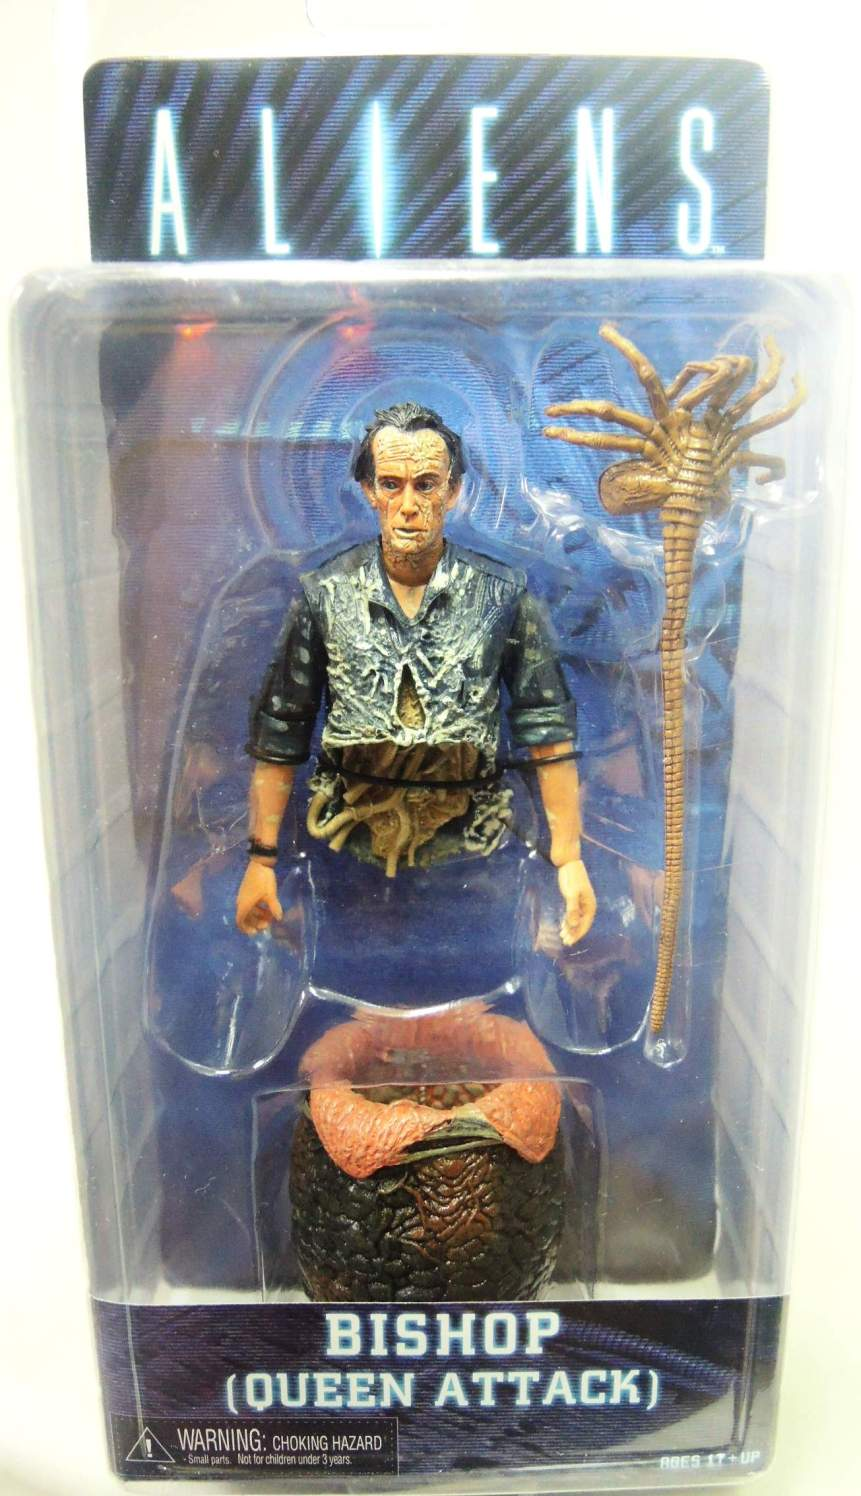 NECA Aliens Series 5 Figure - Bishop (Queen Attack)